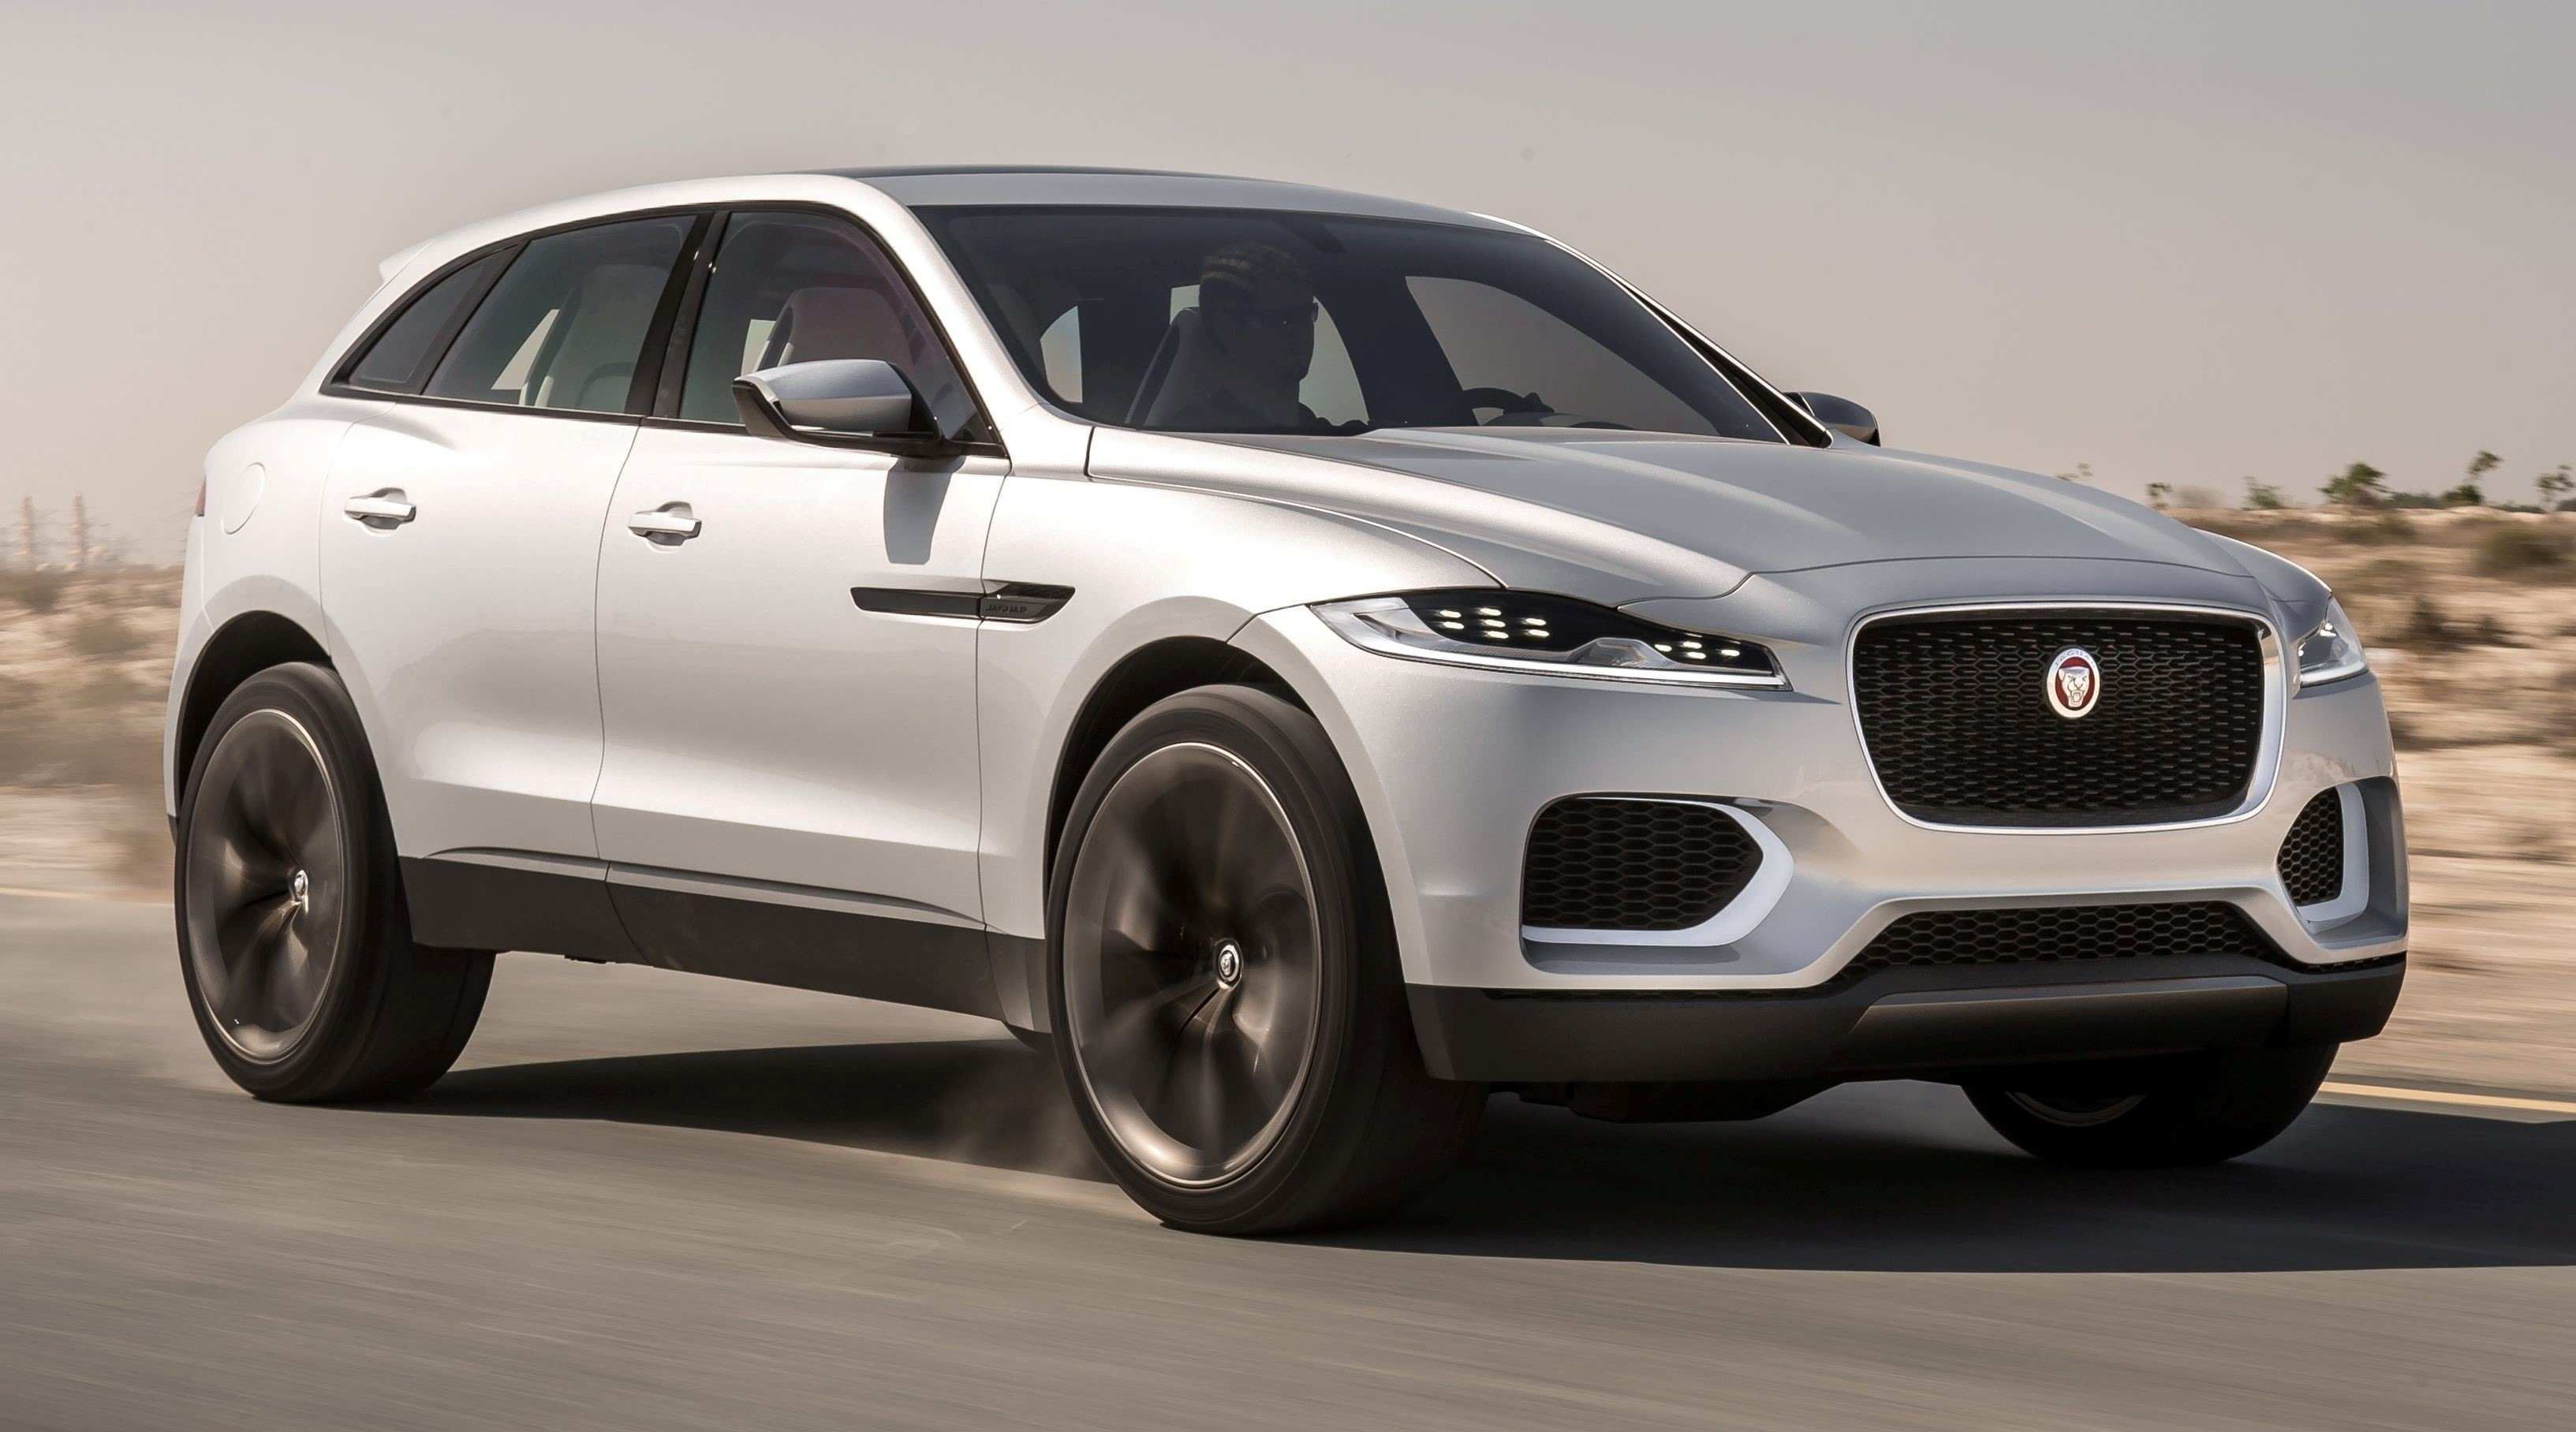 62 Best Review 2020 Jaguar Xq Crossover Style for 2020 Jaguar Xq Crossover